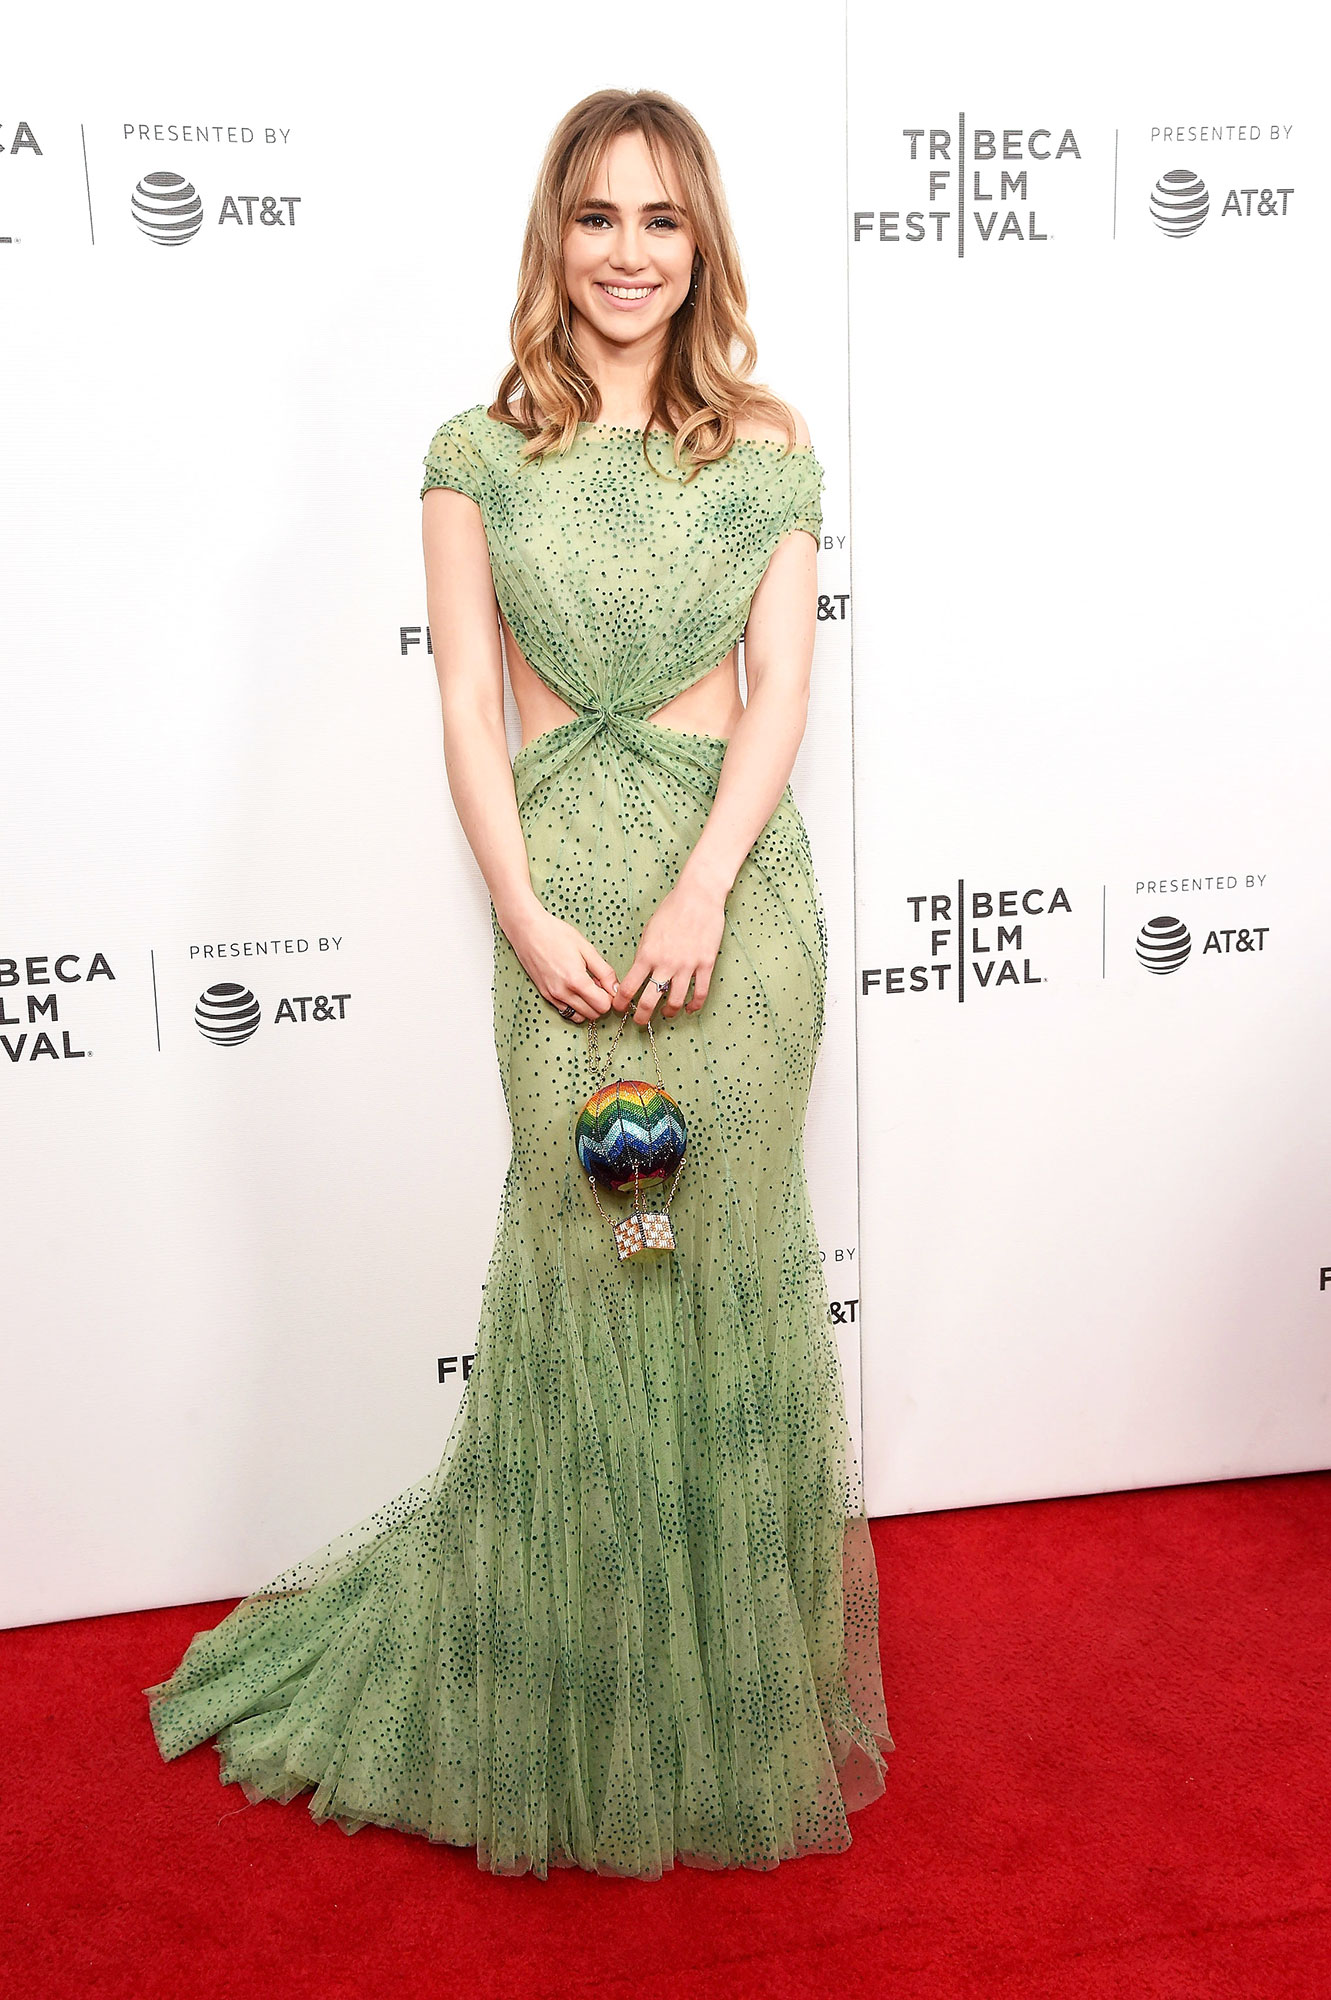 Suki Waterhouse Stars up Their Style Game at Tribeca Film Festival - Looking dreamy in green at the Charlie Says screening on May 1, the U.K. model wore a floor-length gown with stomach cutouts for added appeal.